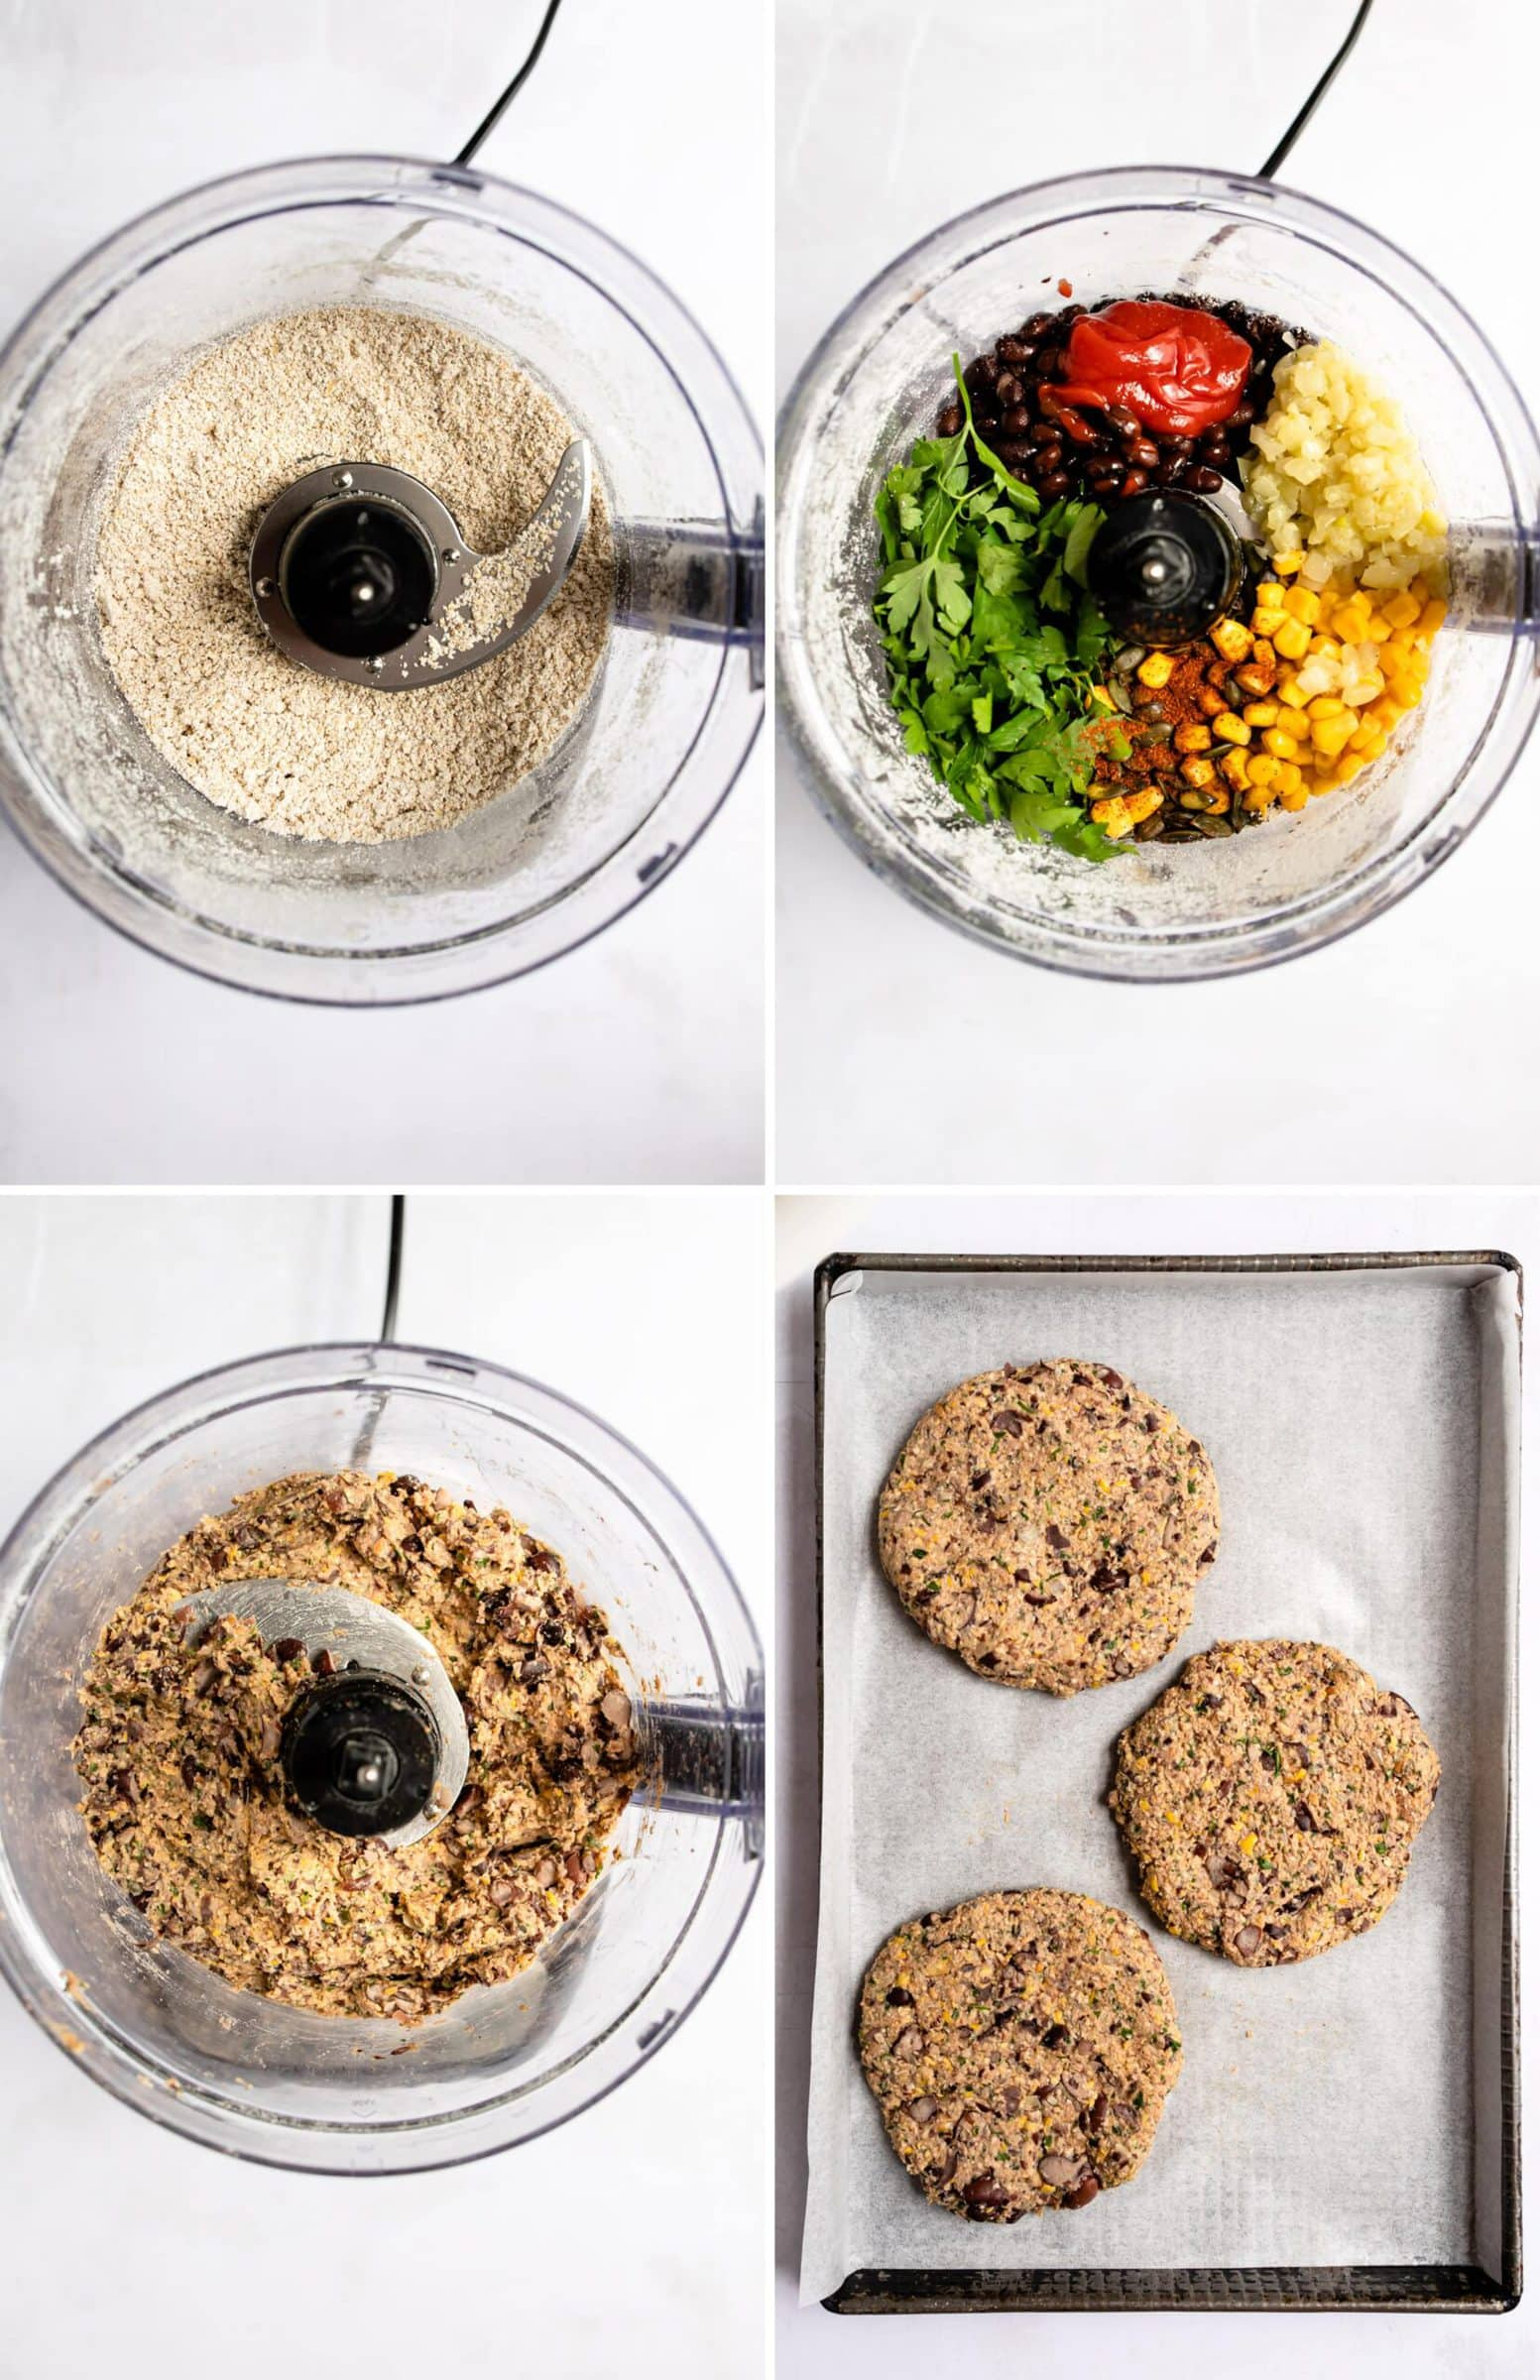 Four process photos showing how to make black bean burgers by pulsing oats, adding veggies and beans and then shaping into burger patties.